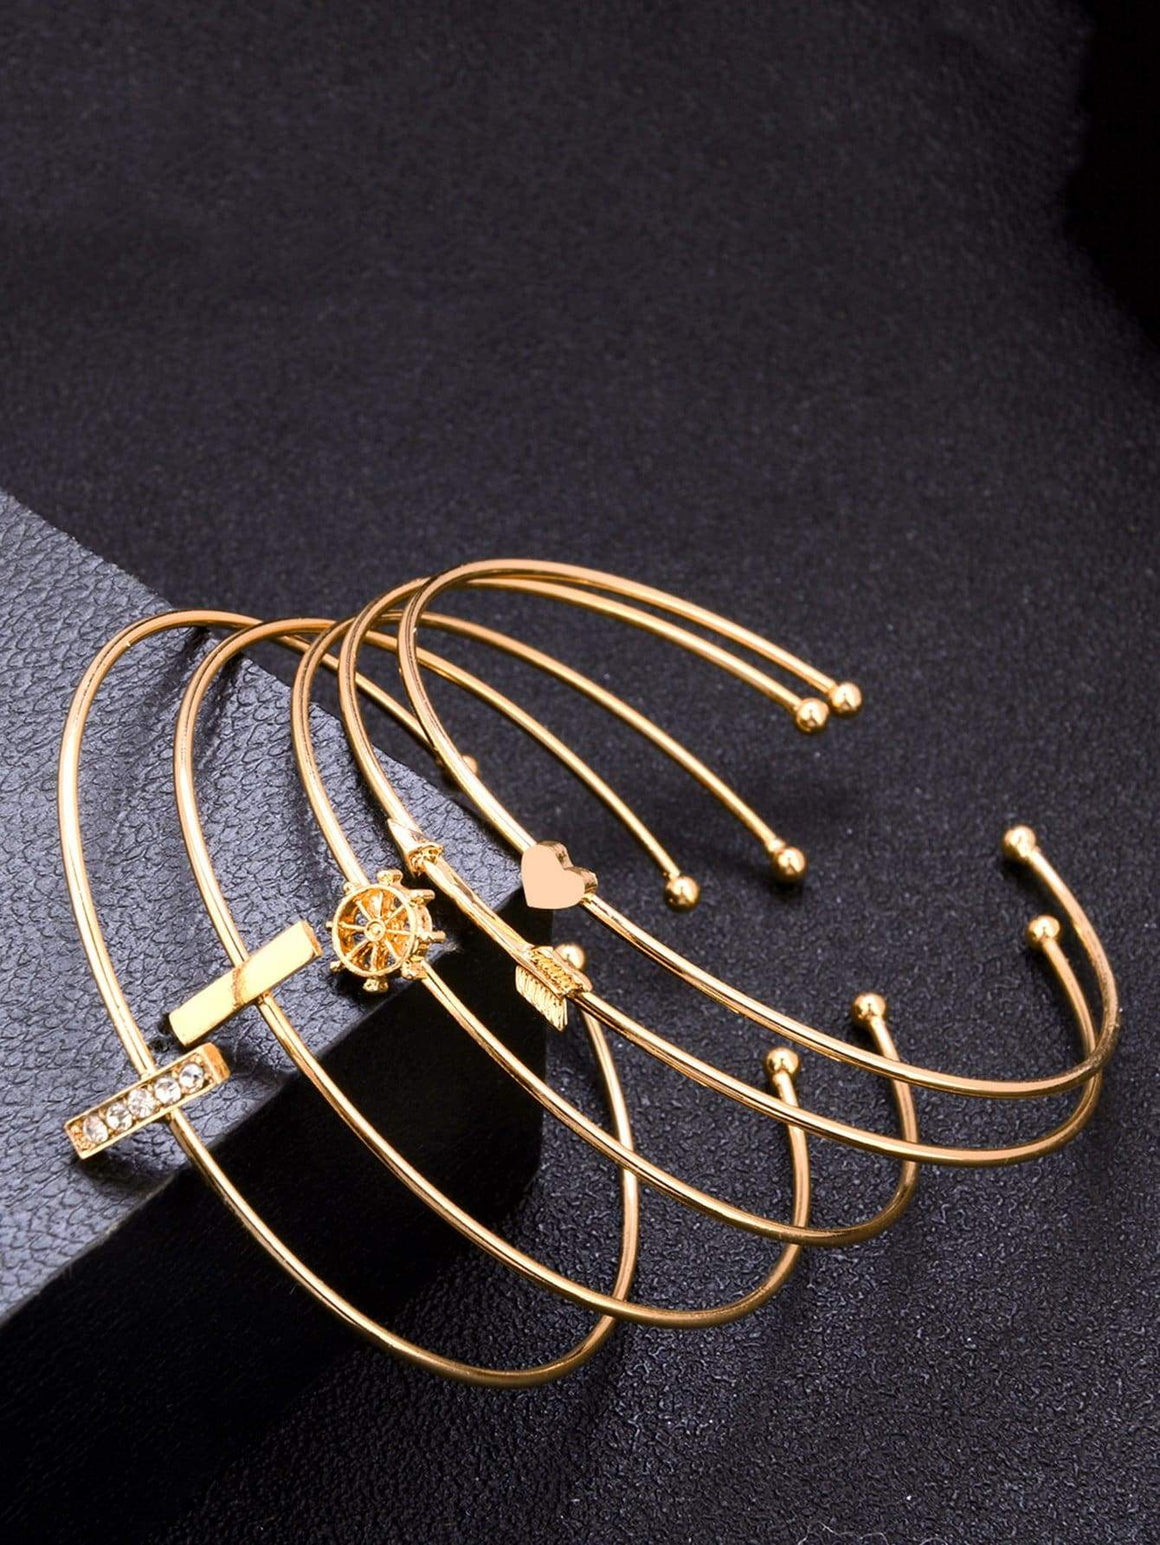 Bar & Arrow Cuff Bracelet Set 5pcs